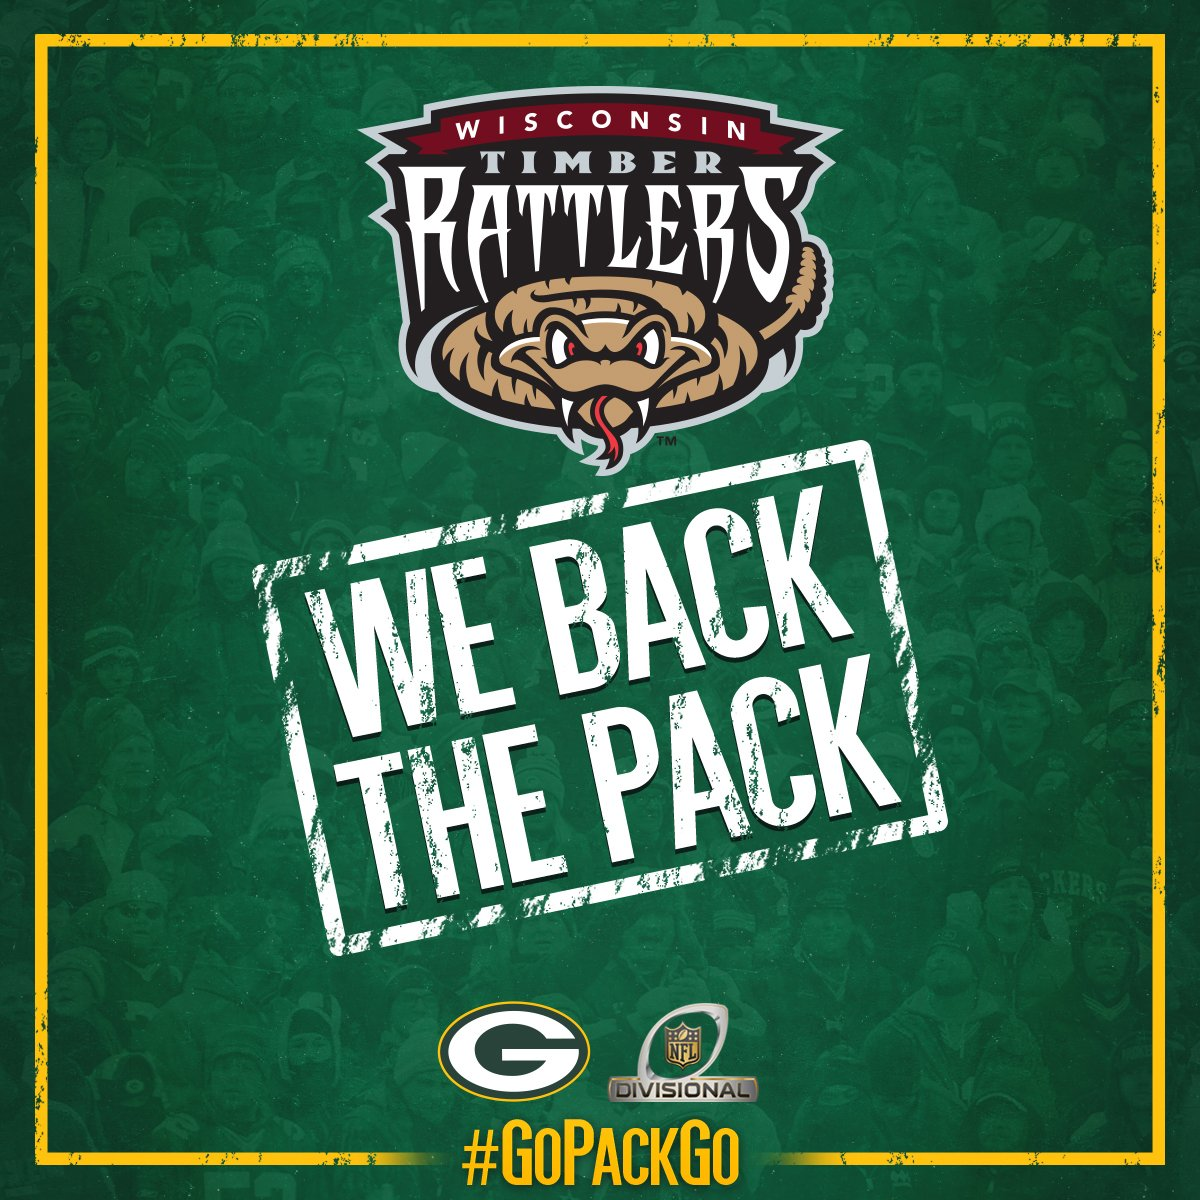 We are ready for a @packers win today! #GoPackGo https://t.co/JcJgQxgKmF